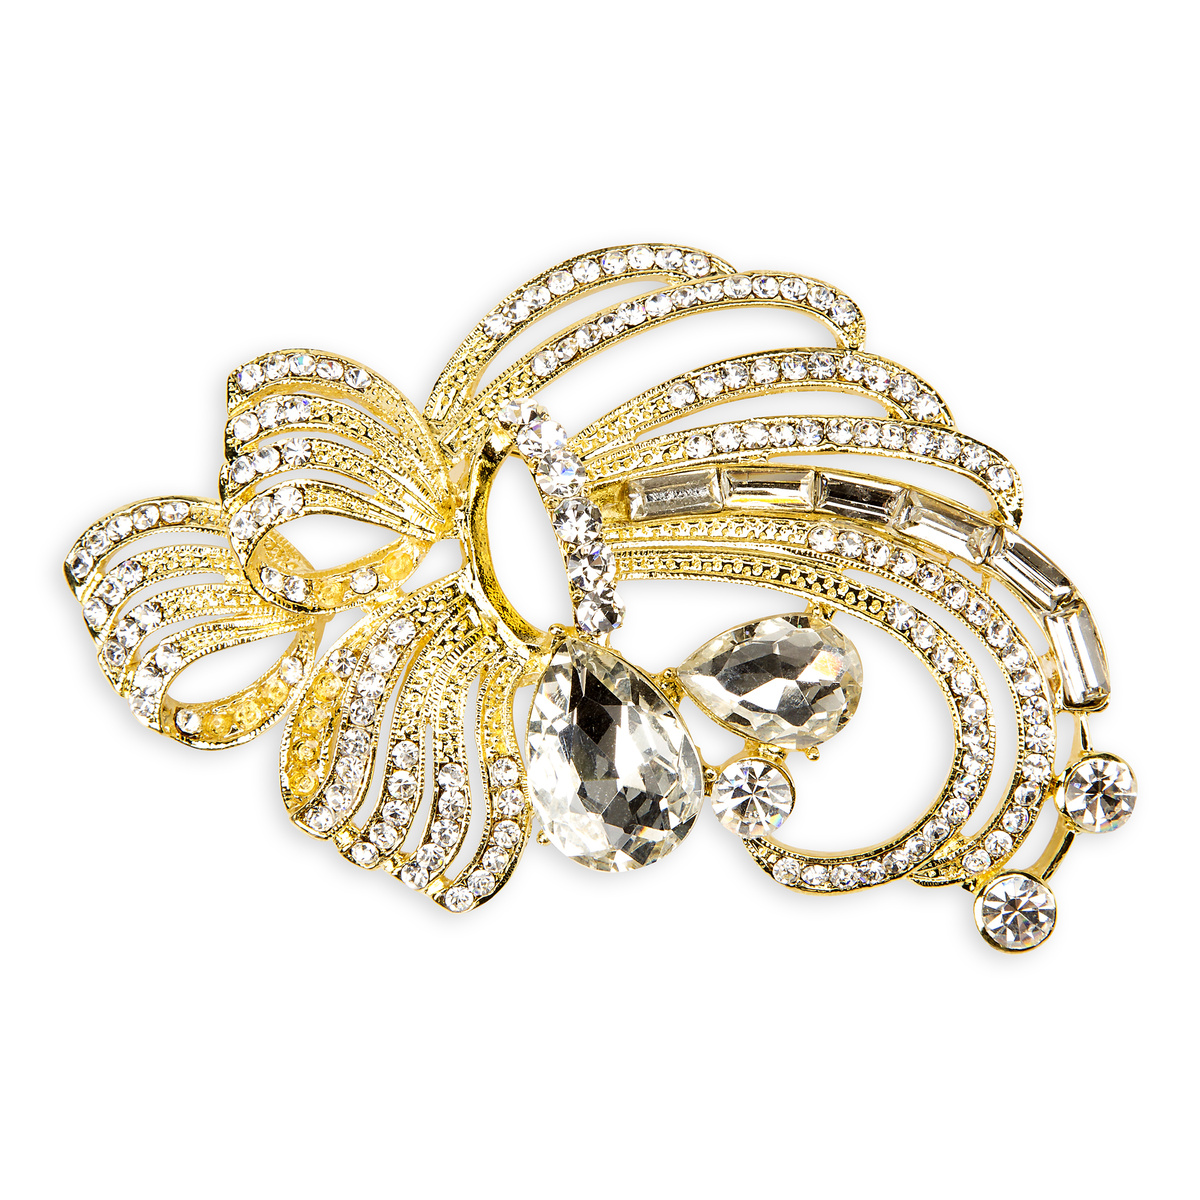 David Tutera™ Bridal Collection Gold Swirl&Teardrop Brooch w/Rhinest.